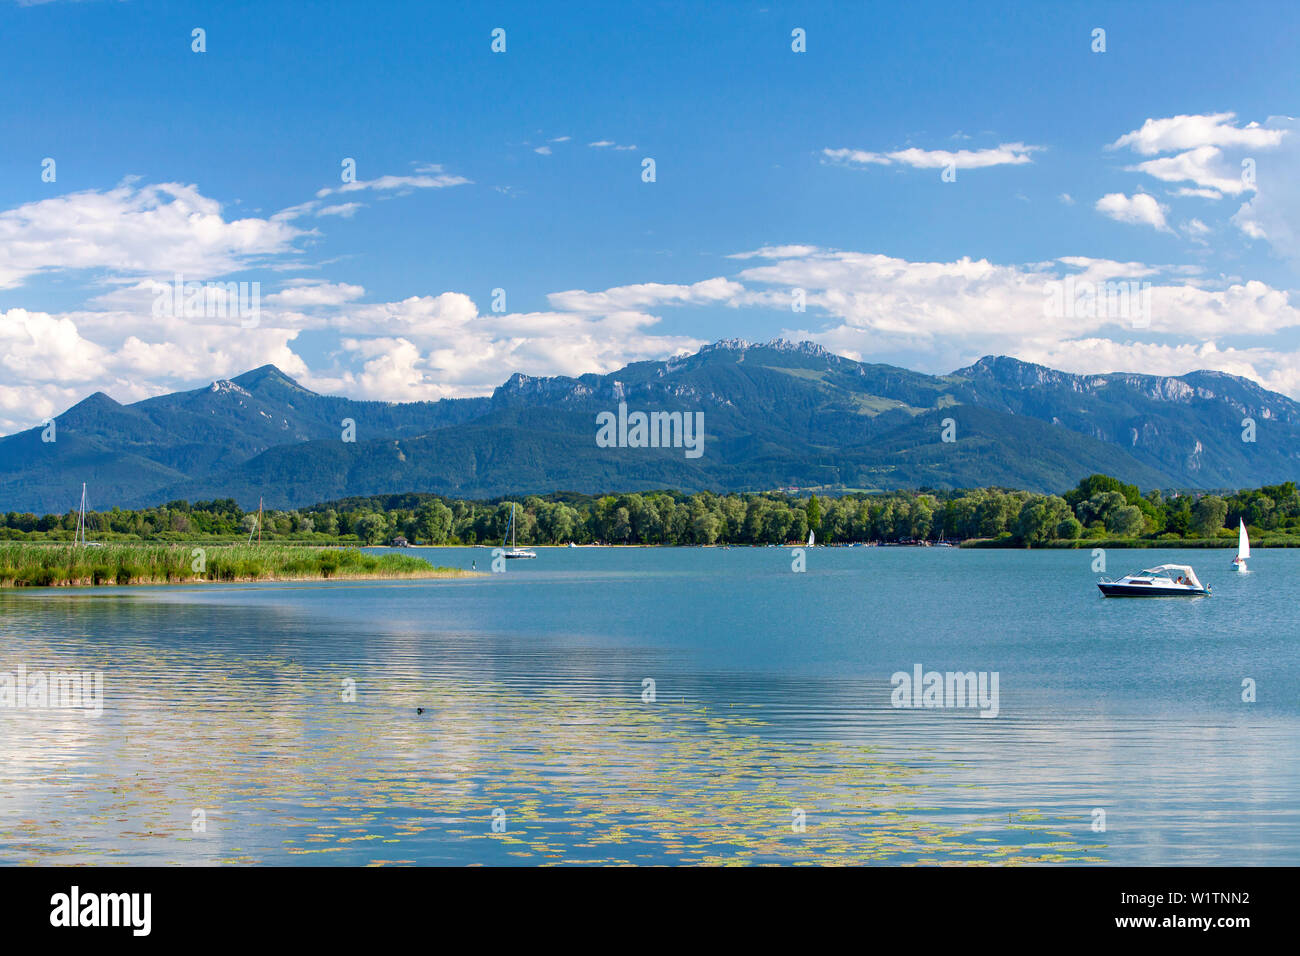 Boats on the summer Lake Chiemsee, in the foreground water lilies and reeds, the Chiemgau mountains in the background Stock Photo